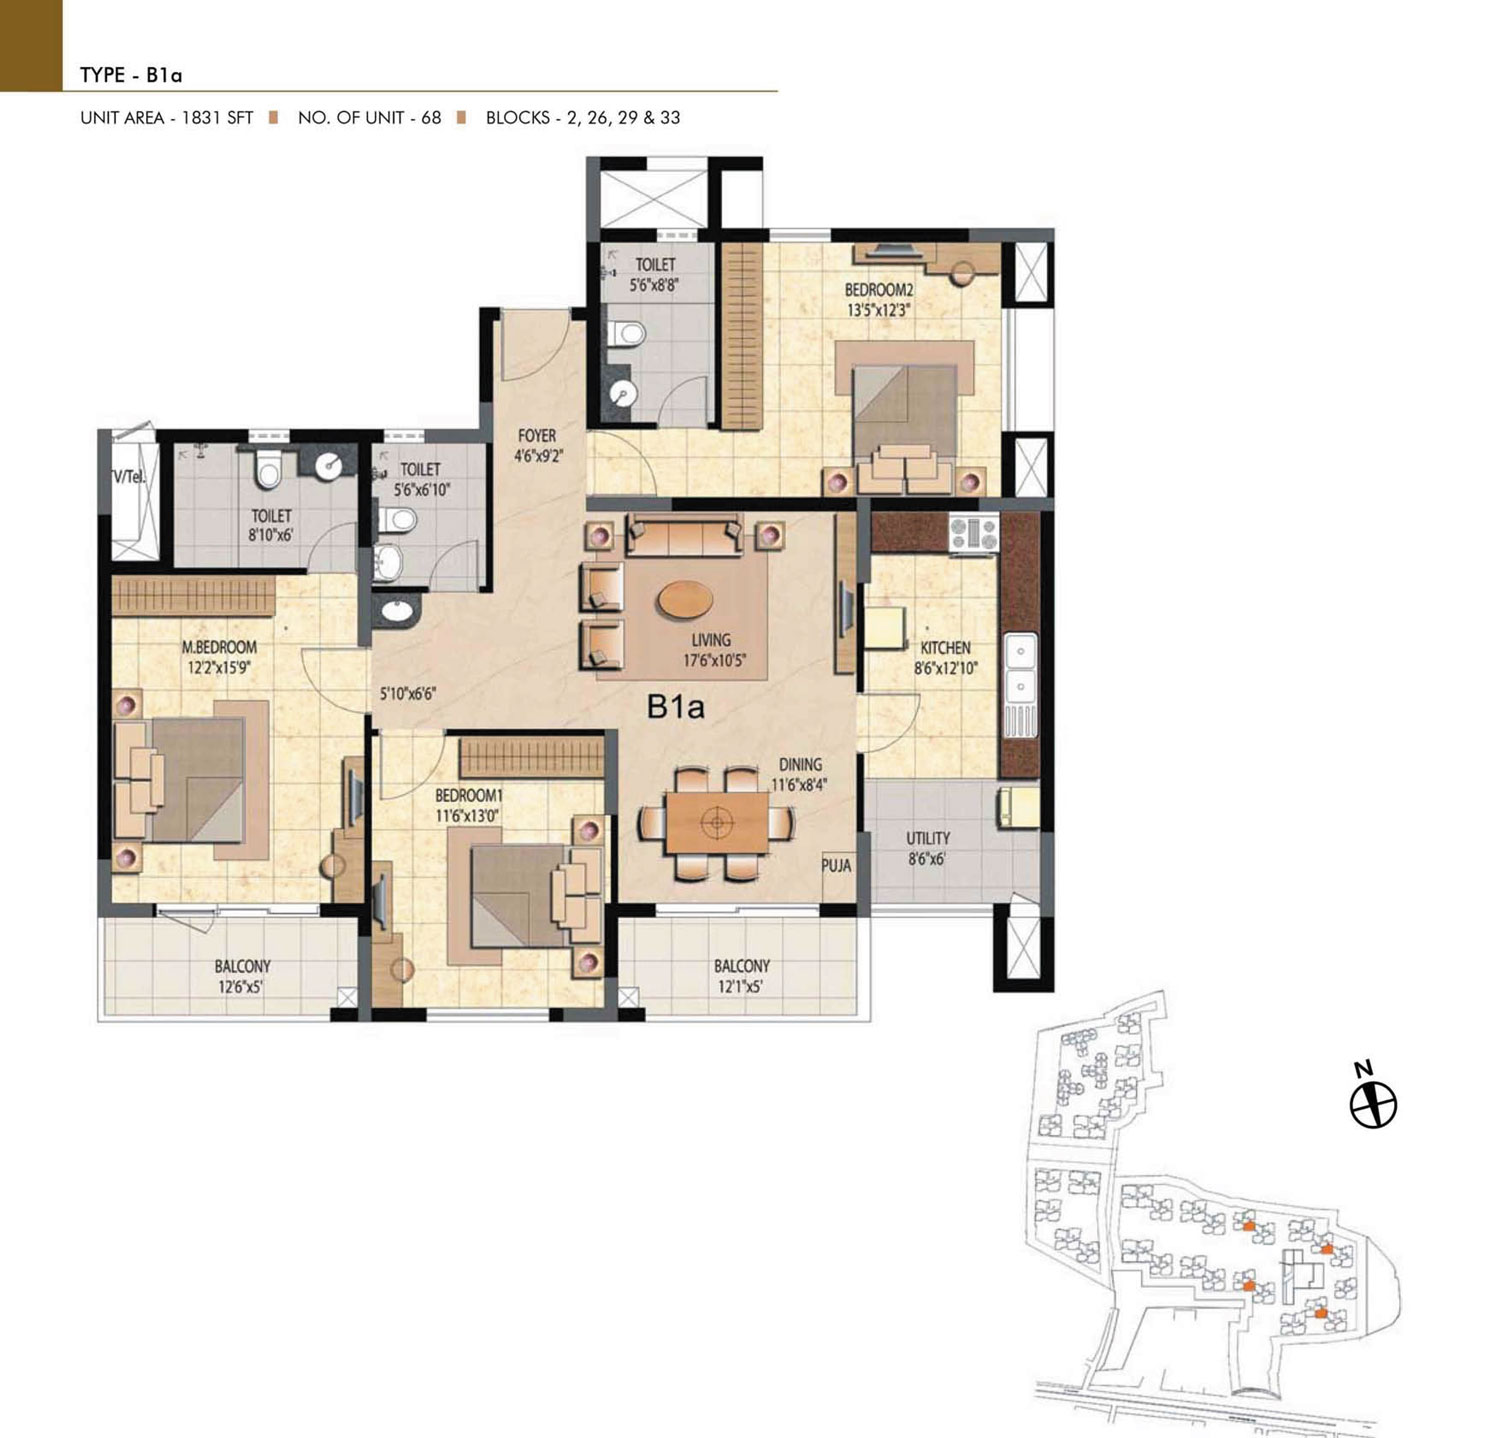 Type B1A - 2 Bed - 1831 Sq Ft